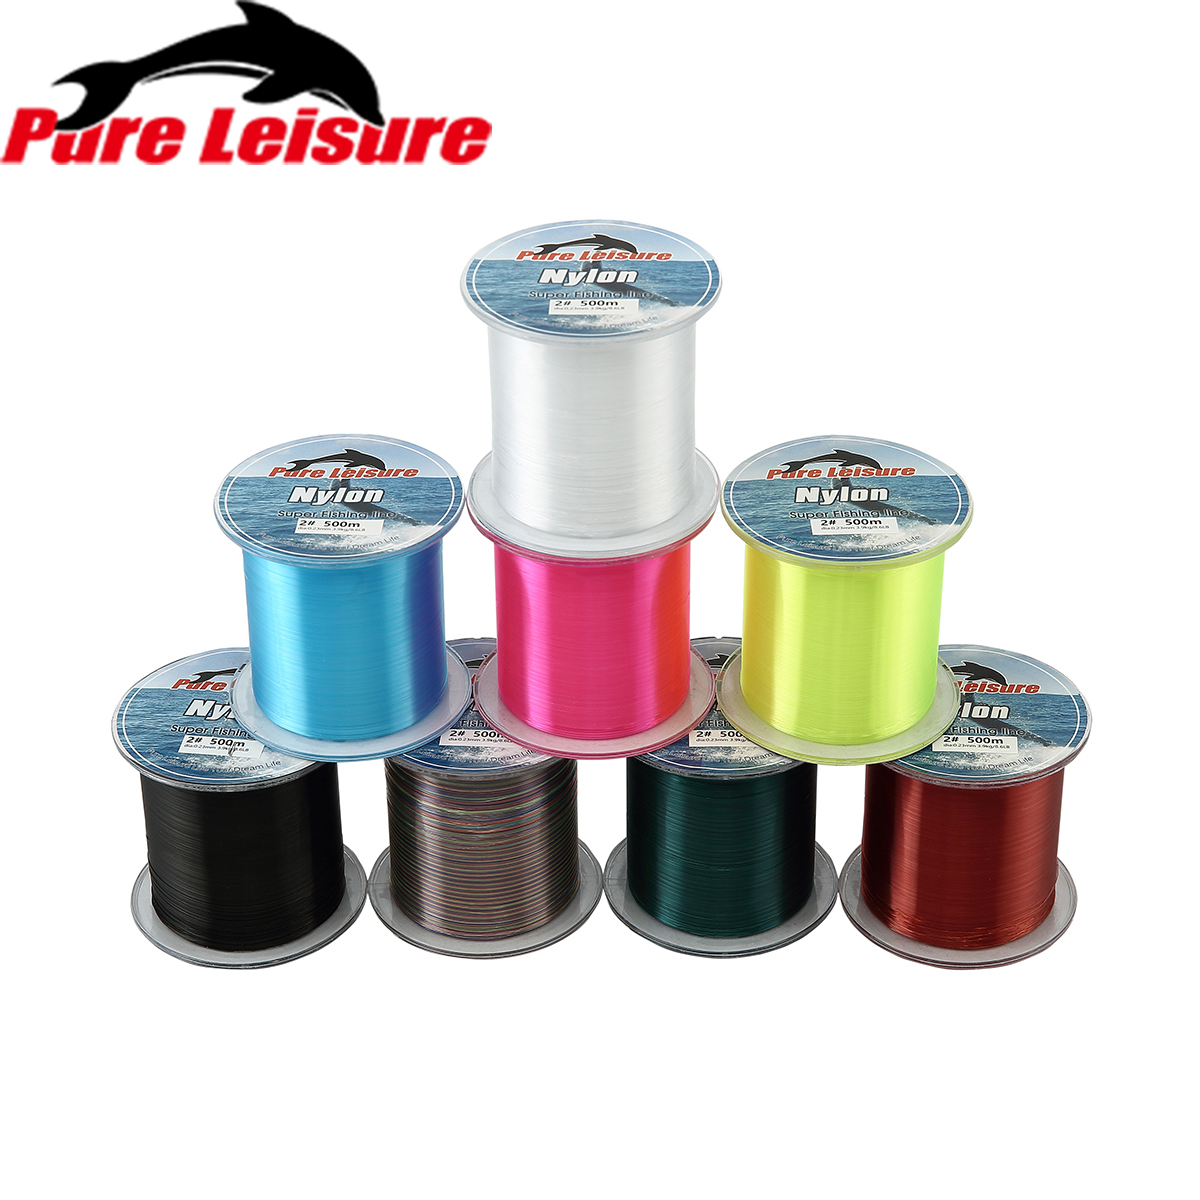 PureLeisure fil de peche nylon fluorocarbone 500M Fishing Lines 500m Strong Nylon Fishing Line Wire Fil De Peche Nylon 500M hd2 5 nylon sea fishing line brown 500m